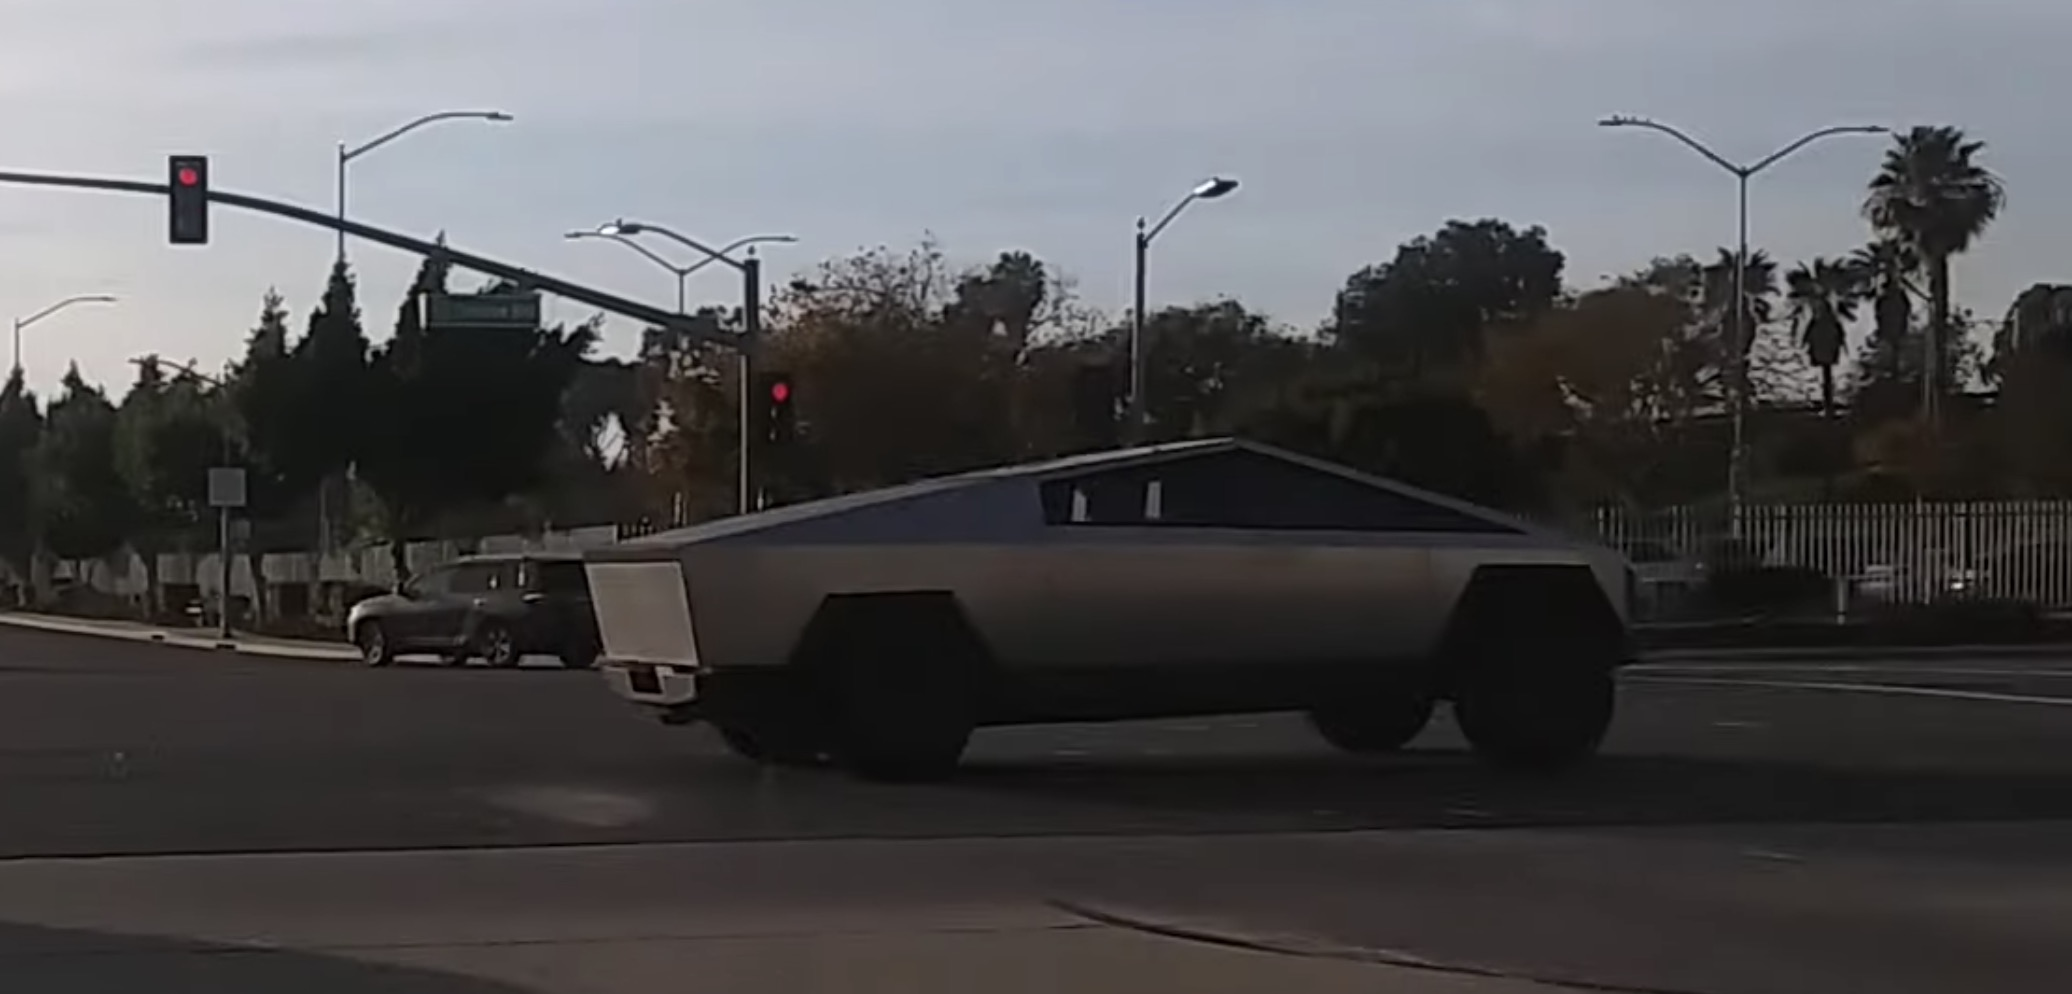 Tesla Cybertruck driven by Elon Musk and Jay Leno spotted ...